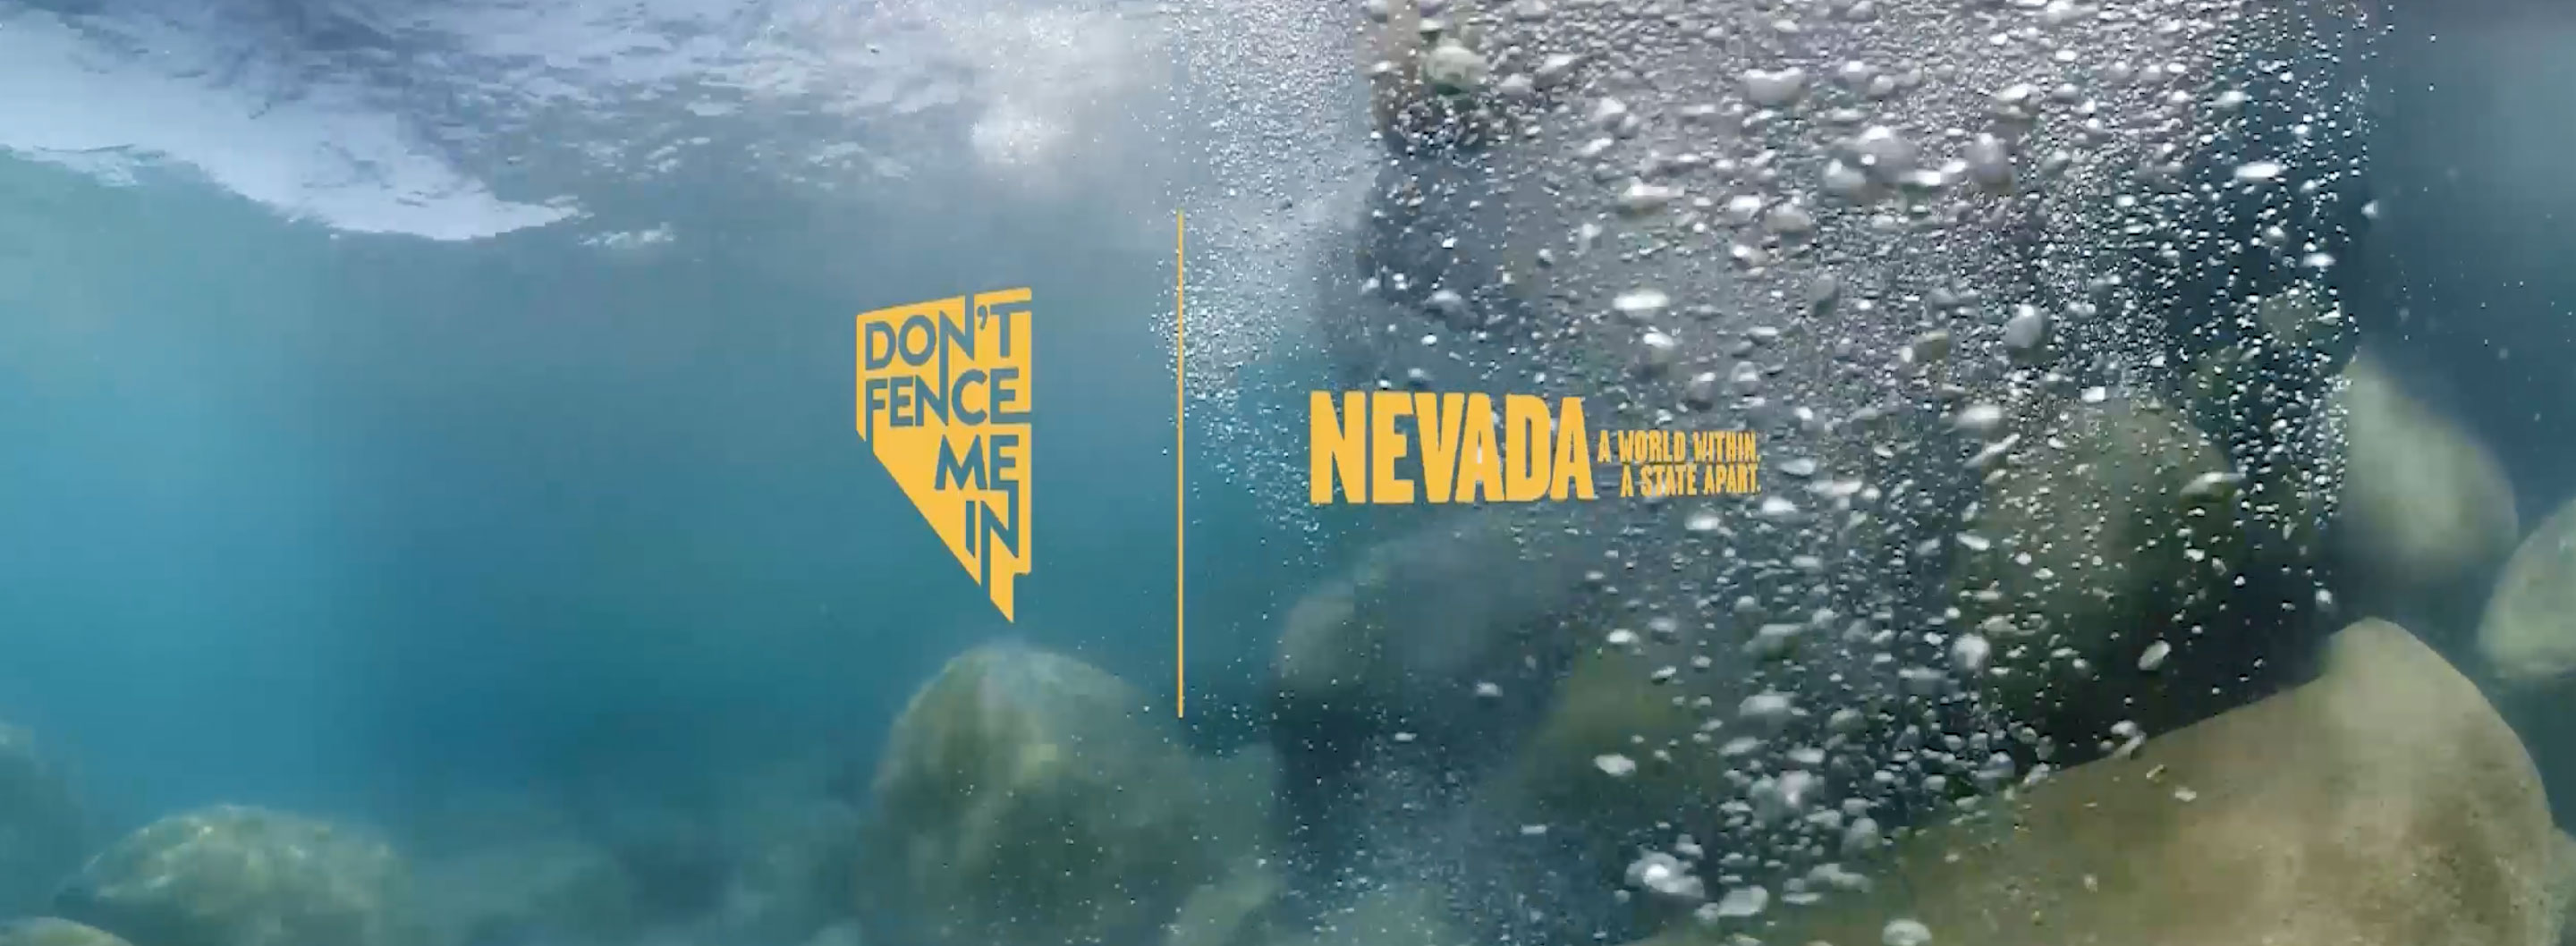 "TravelNevada.com Launches 360-Degree Video ""Don't Fence Me In"" VR Tour"